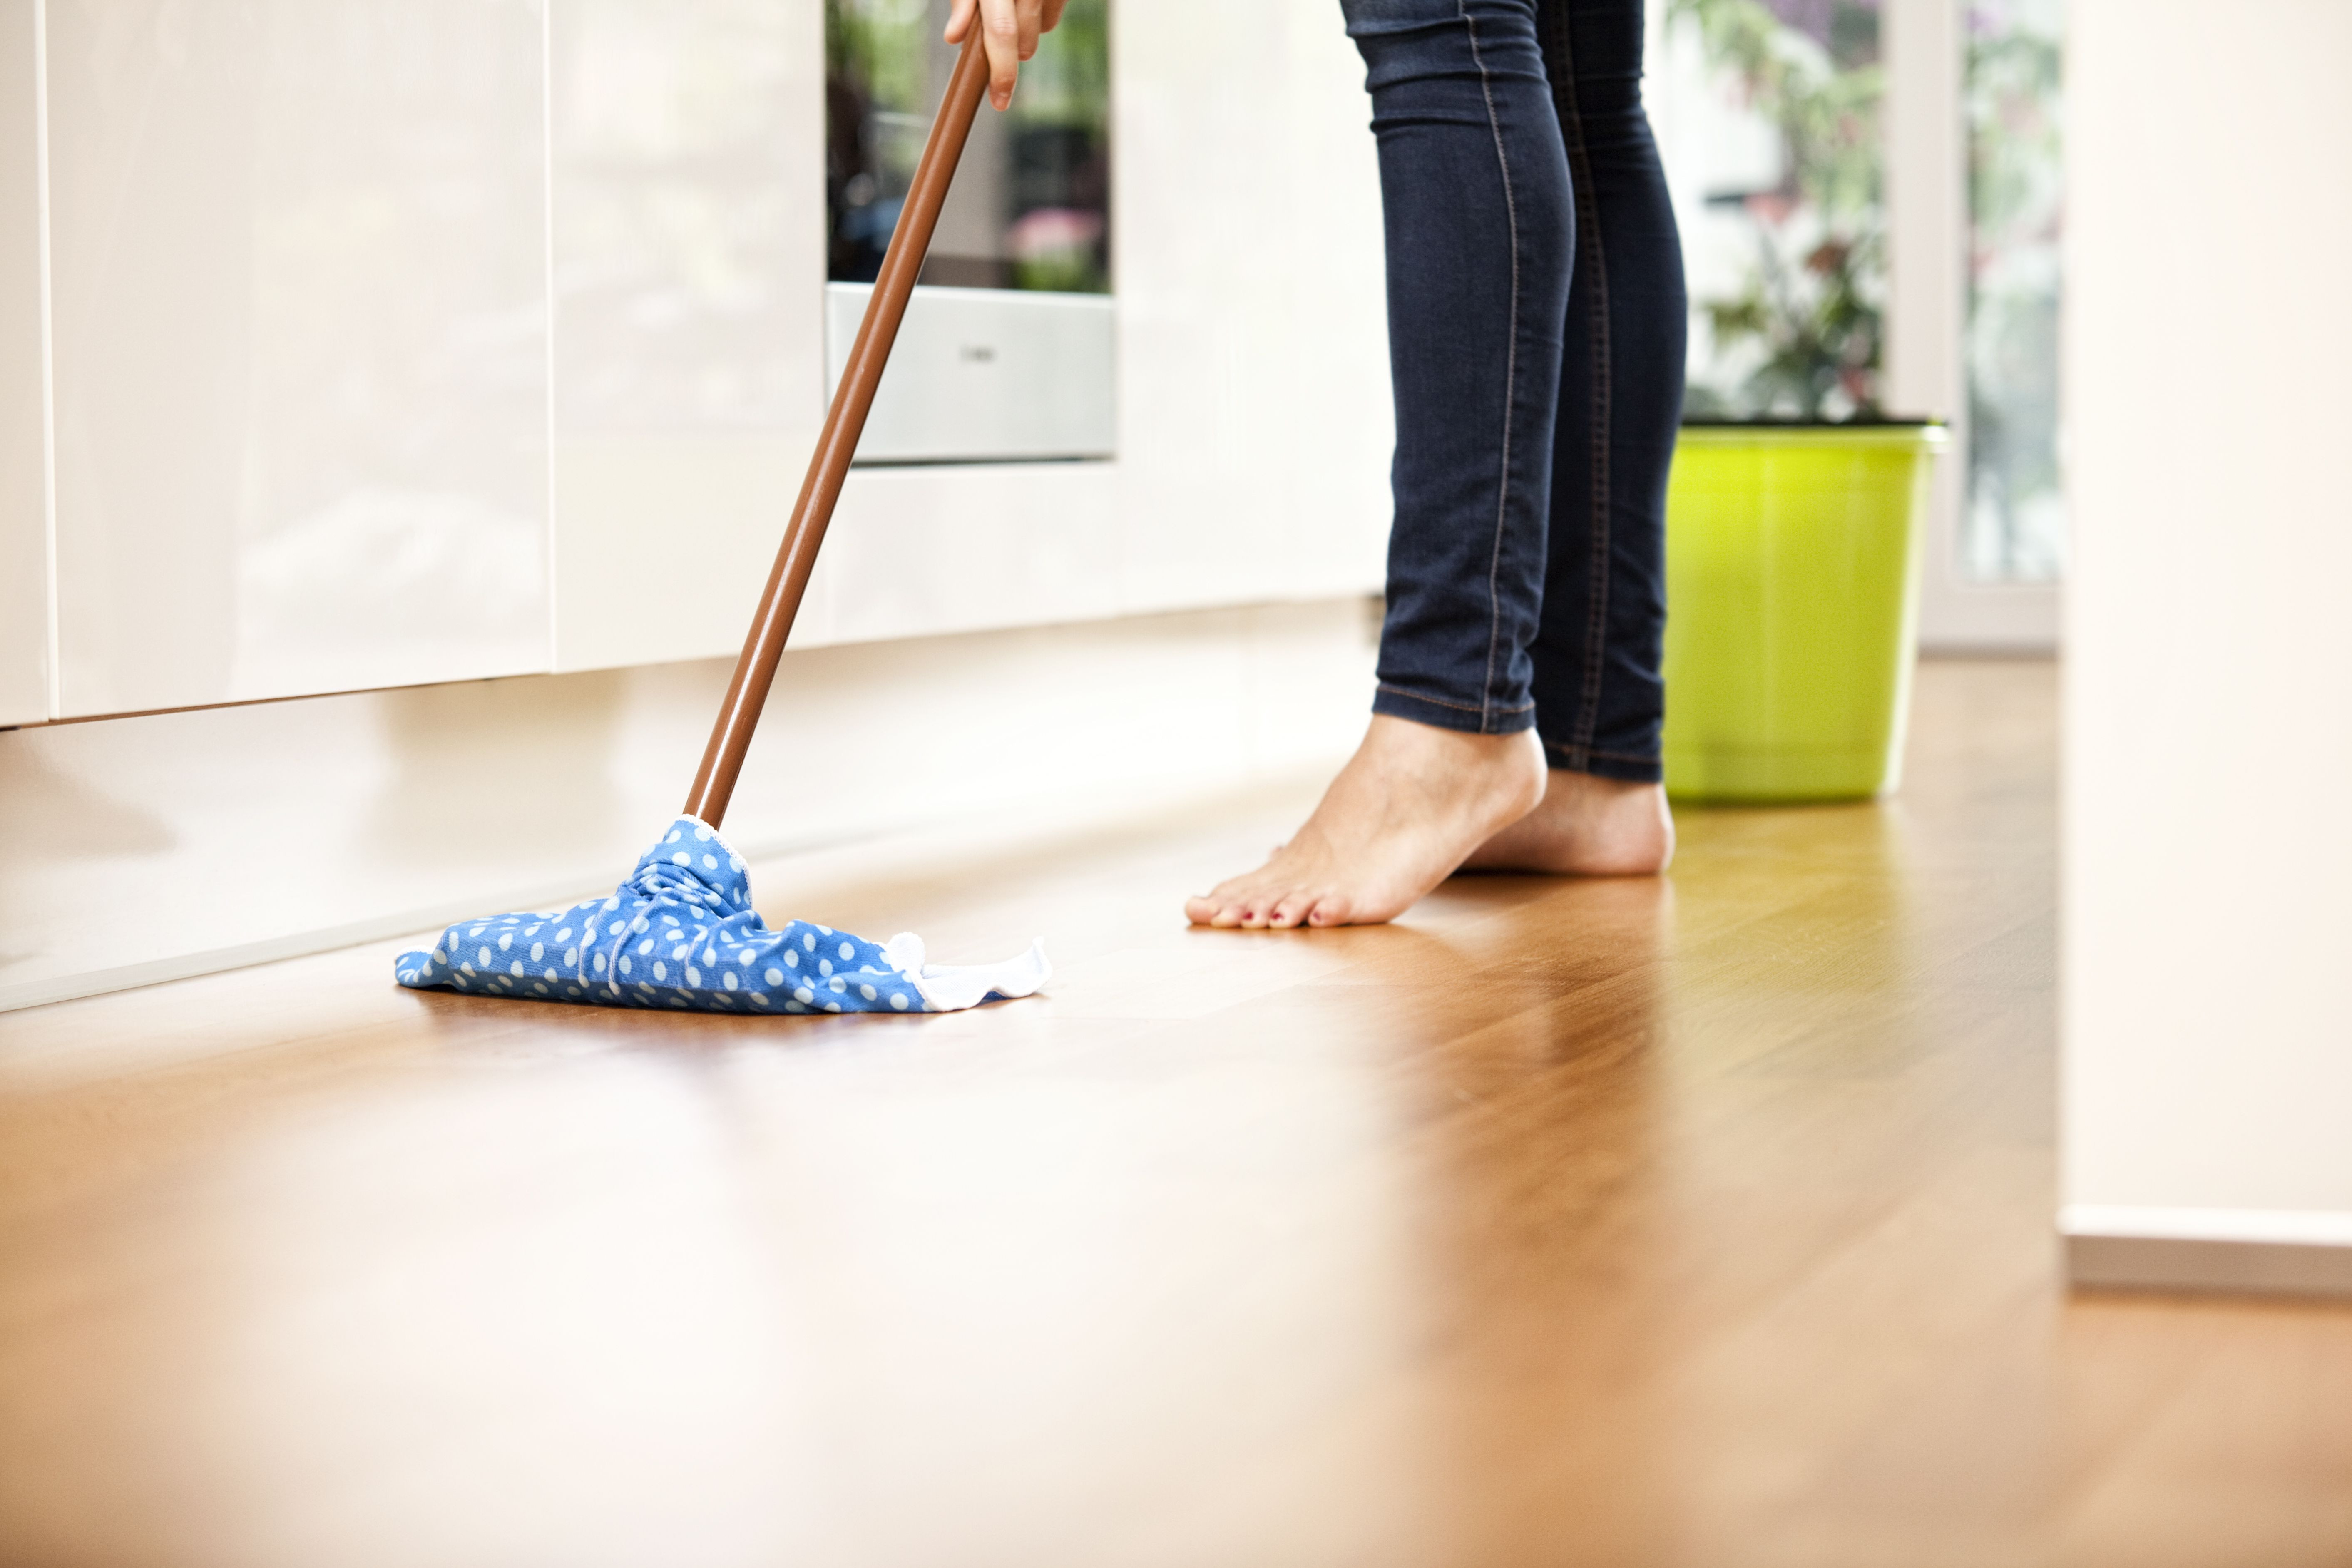 how to make hardwood floors shine of the right cleaners for your solid hardwood flooring pertaining to woman wiping the floor 588494585 585049b43df78c491ebc200a